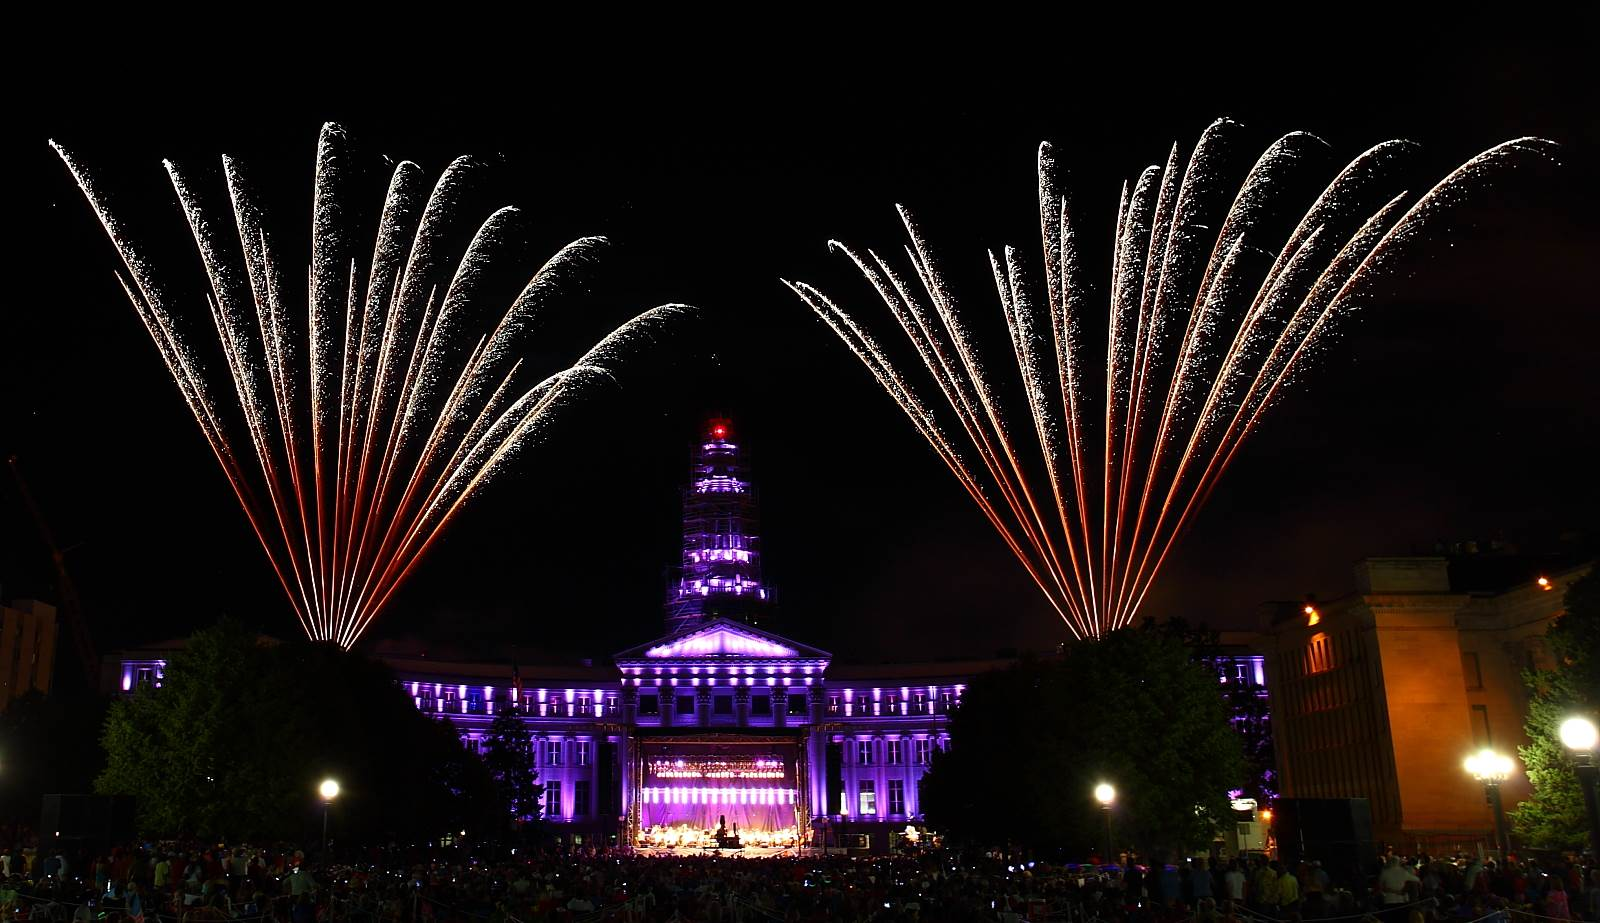 Denver Civic Center Park, 2013 - Fireworks over the Denver County Courthouse displayed along with a performance from the Denver Symphony. by D Scott Smith